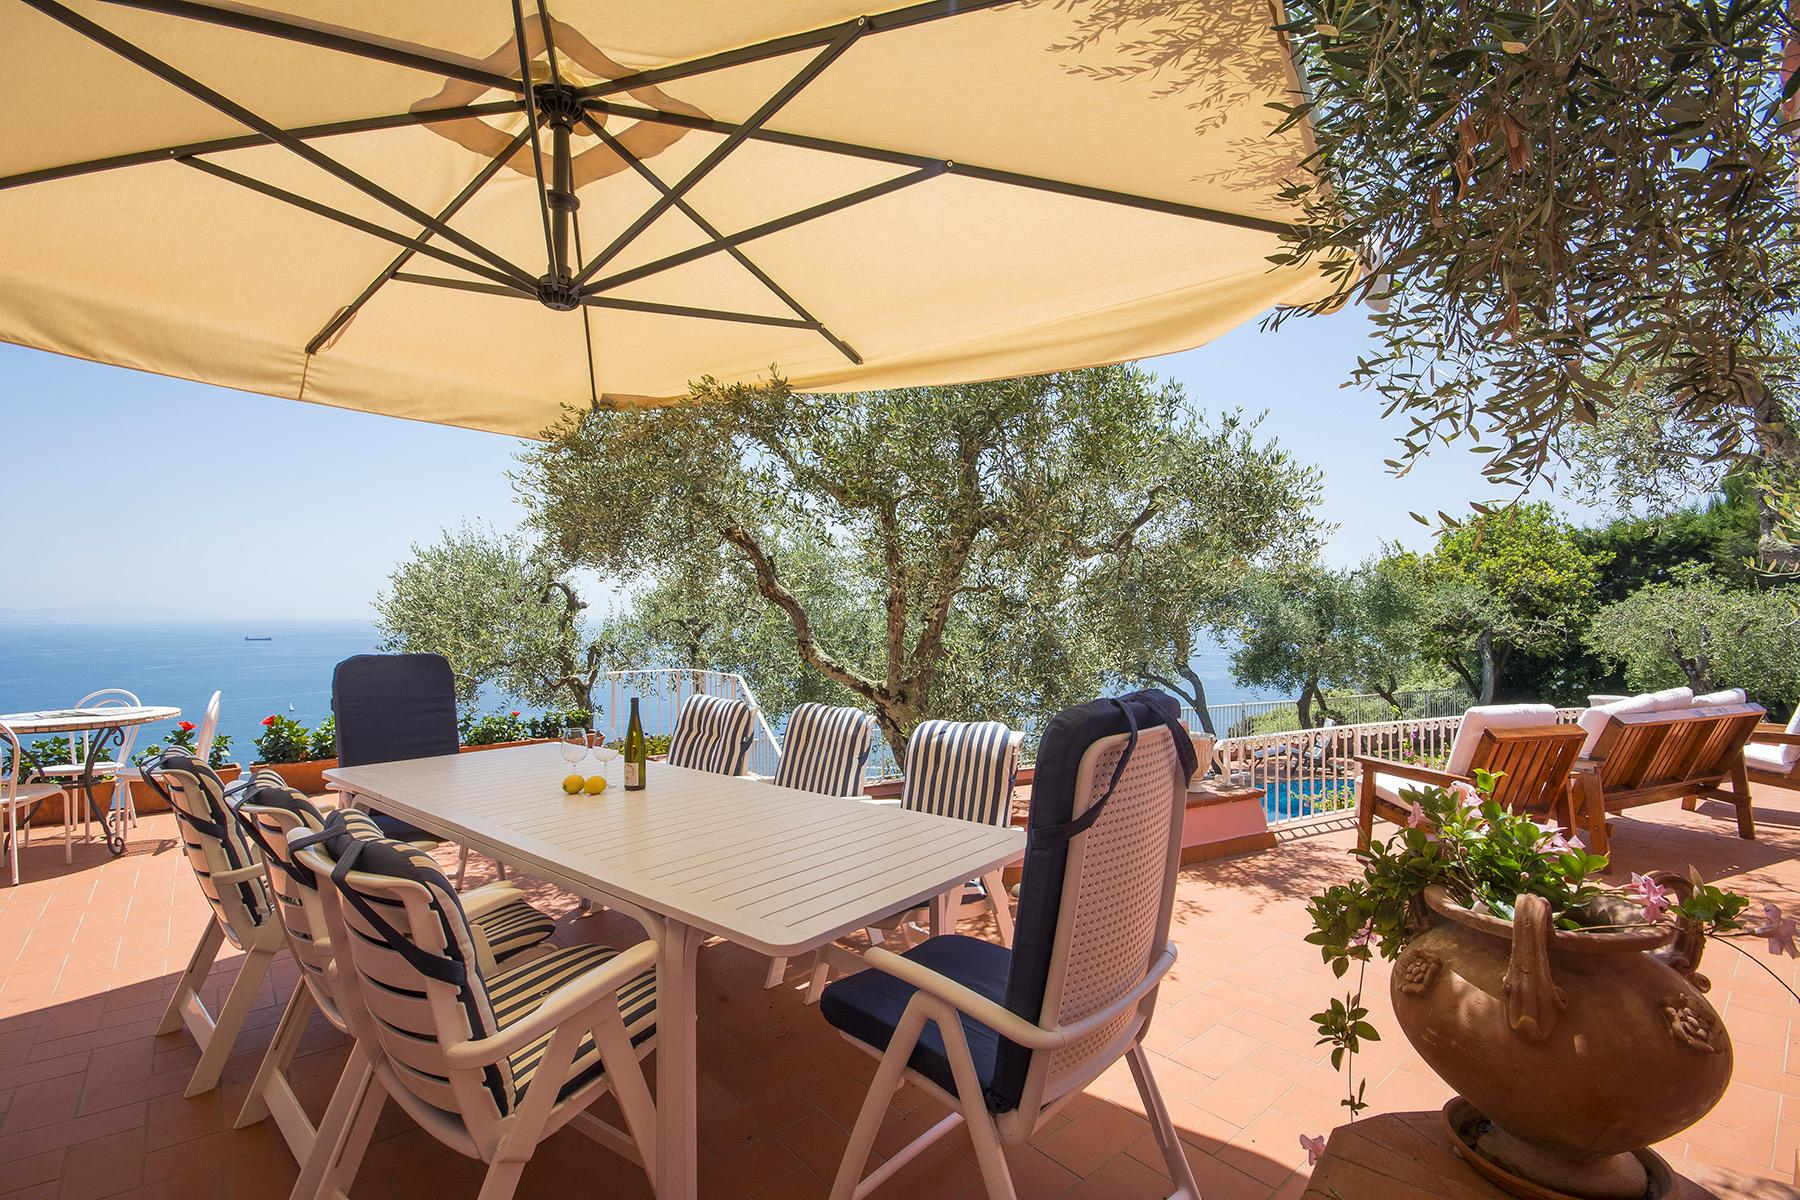 Charming luxury villa with swimming pool overlooking the Ligurian sea - 11